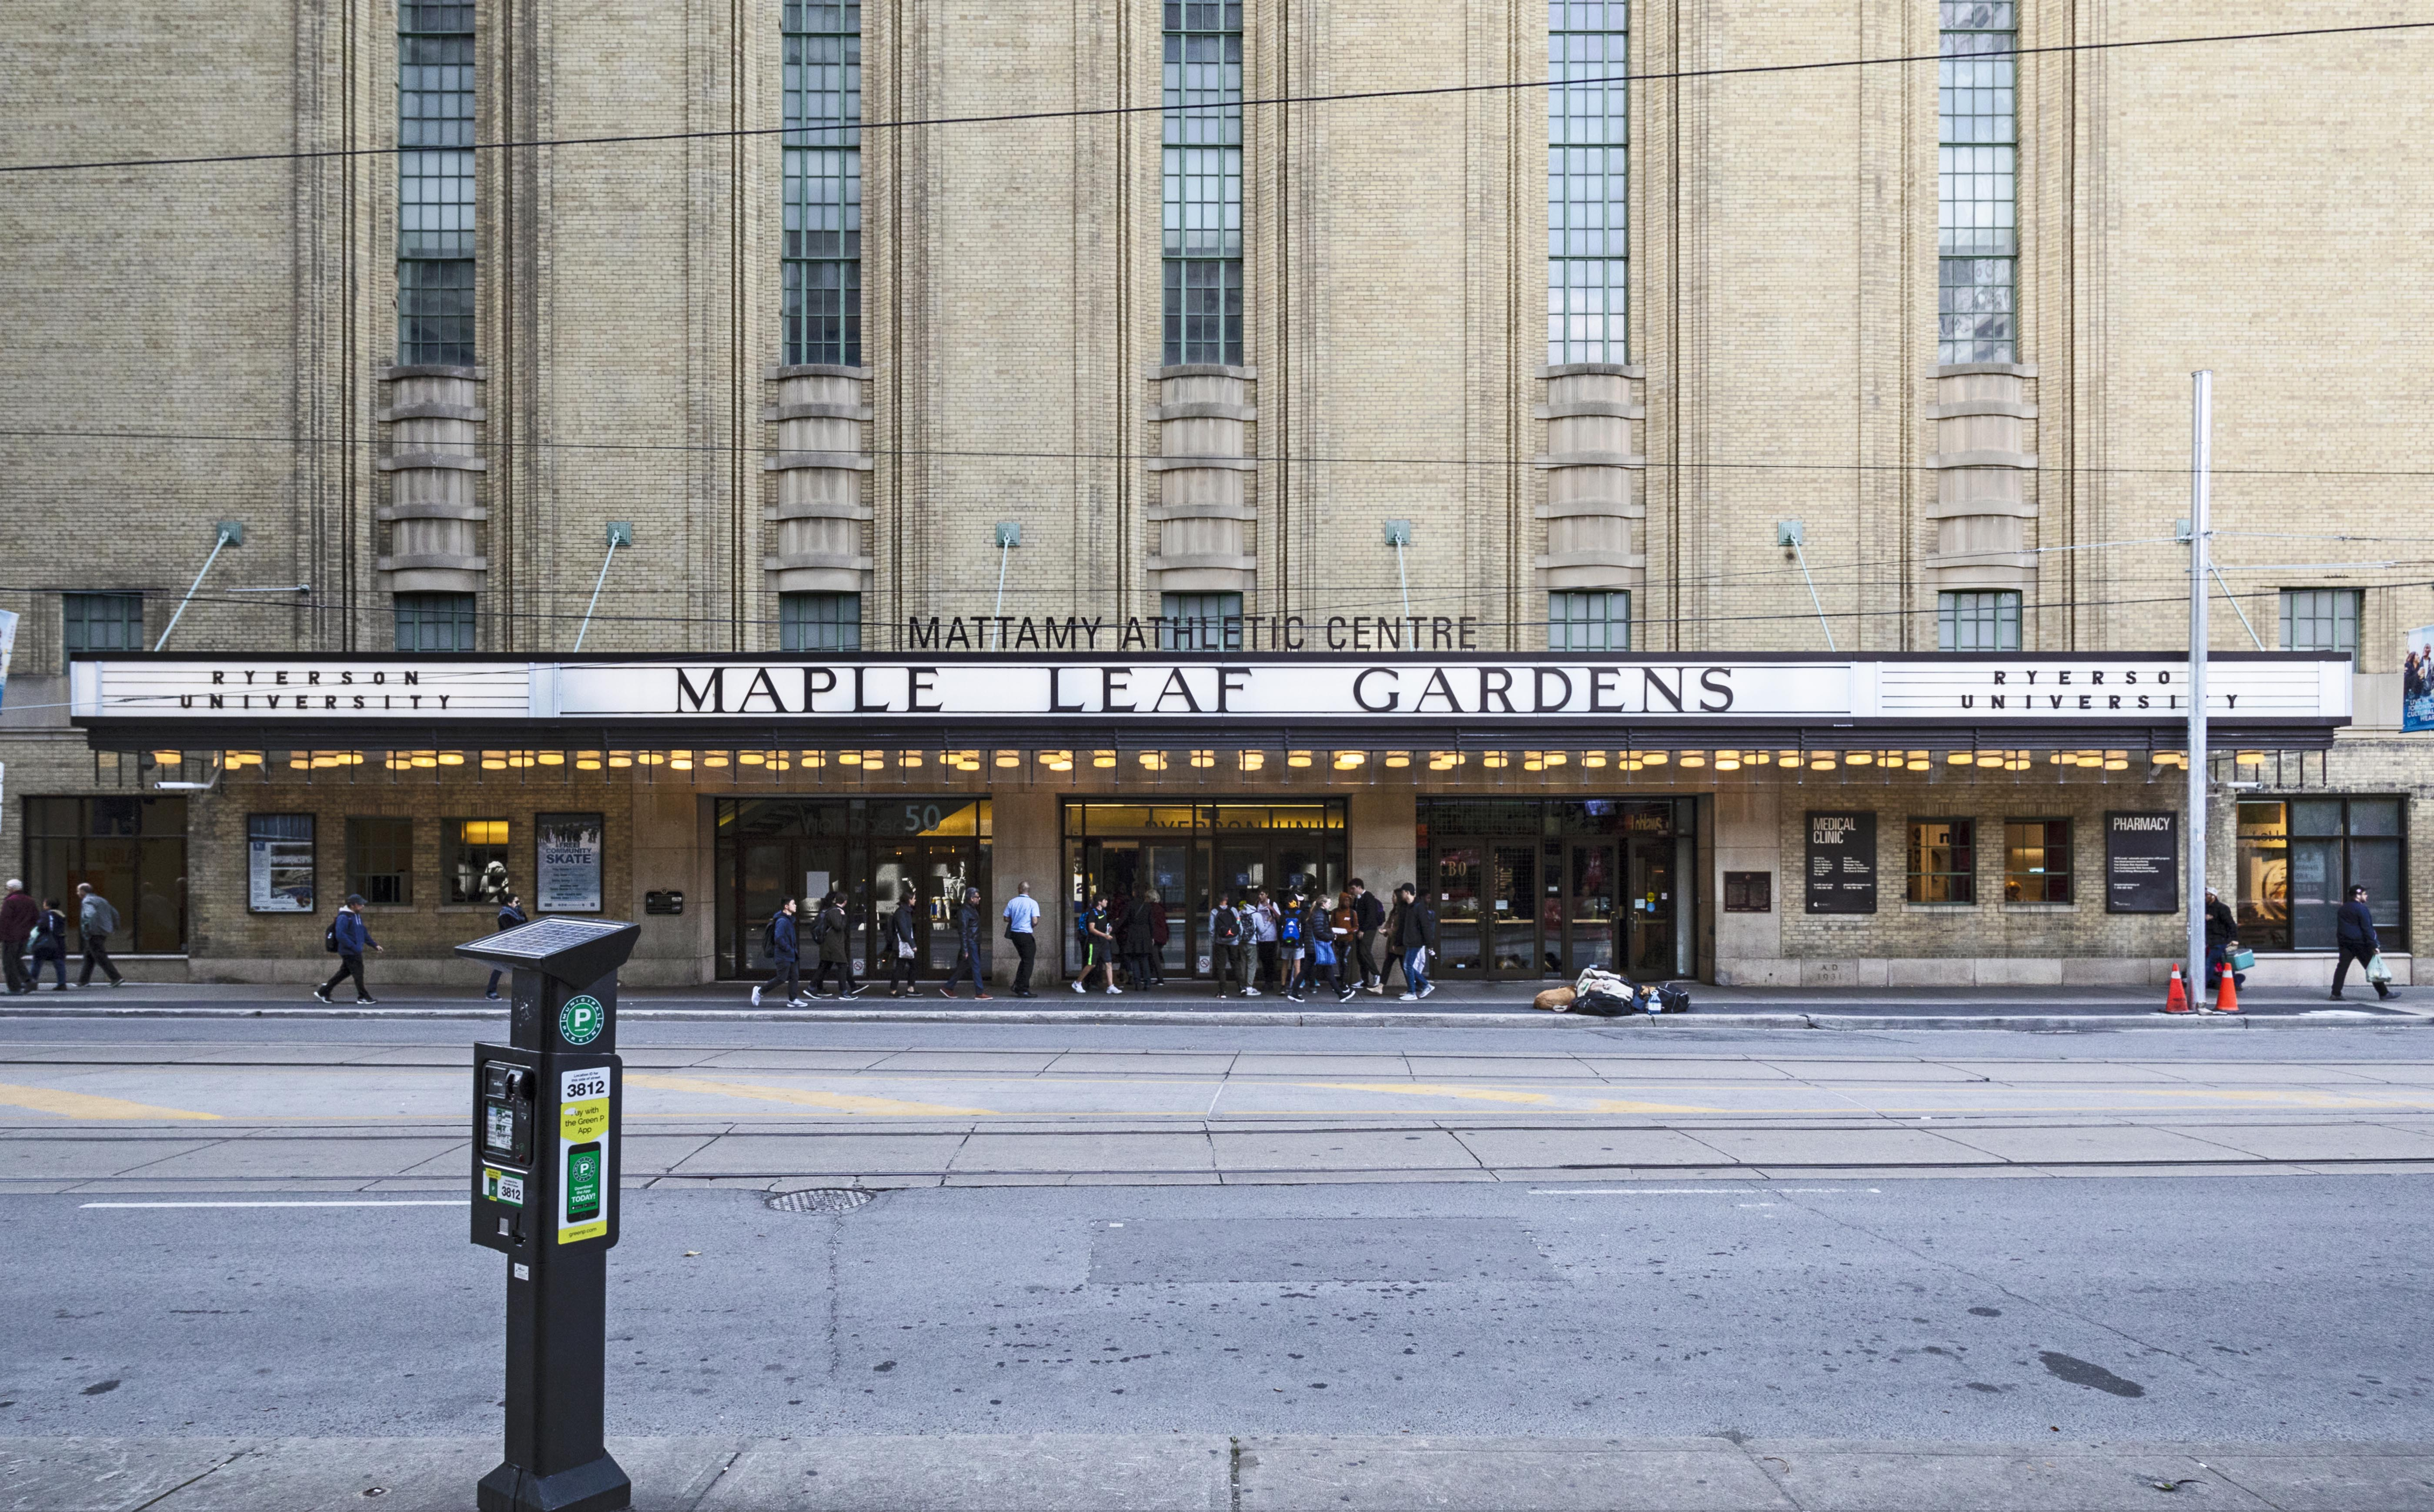 """Exterior of an imposing building with a maruqee that reads """"Maple Leaf Gardens"""". In the foreground there is a parking meter. Outside the building, people stand around."""